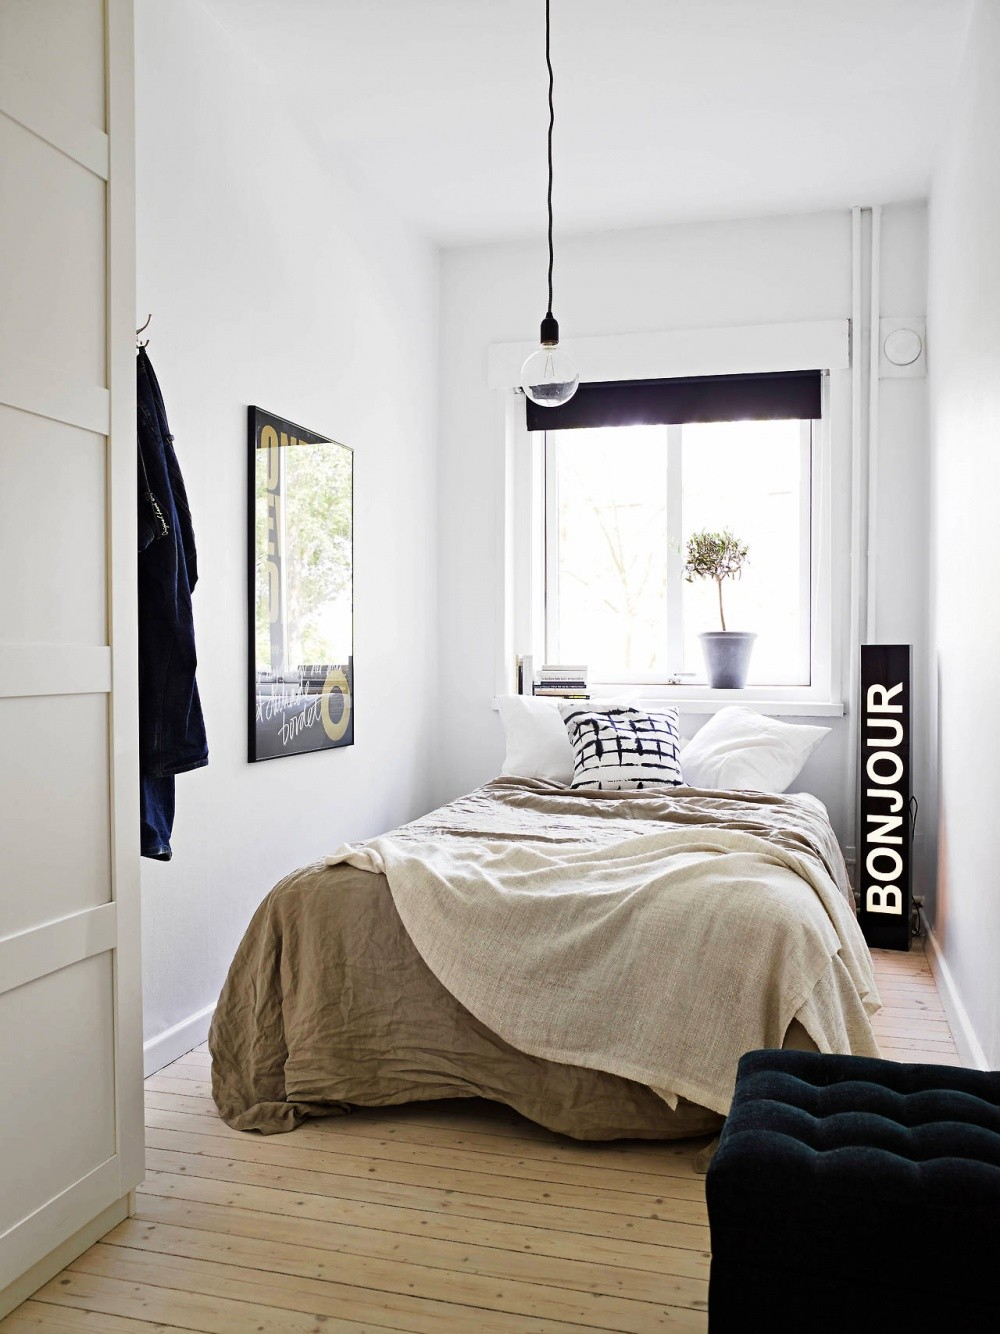 facebook episode extras the with agree ever pictures do block bestbedroom selections of bedroom off their our page sound season on bedrooms you best latest